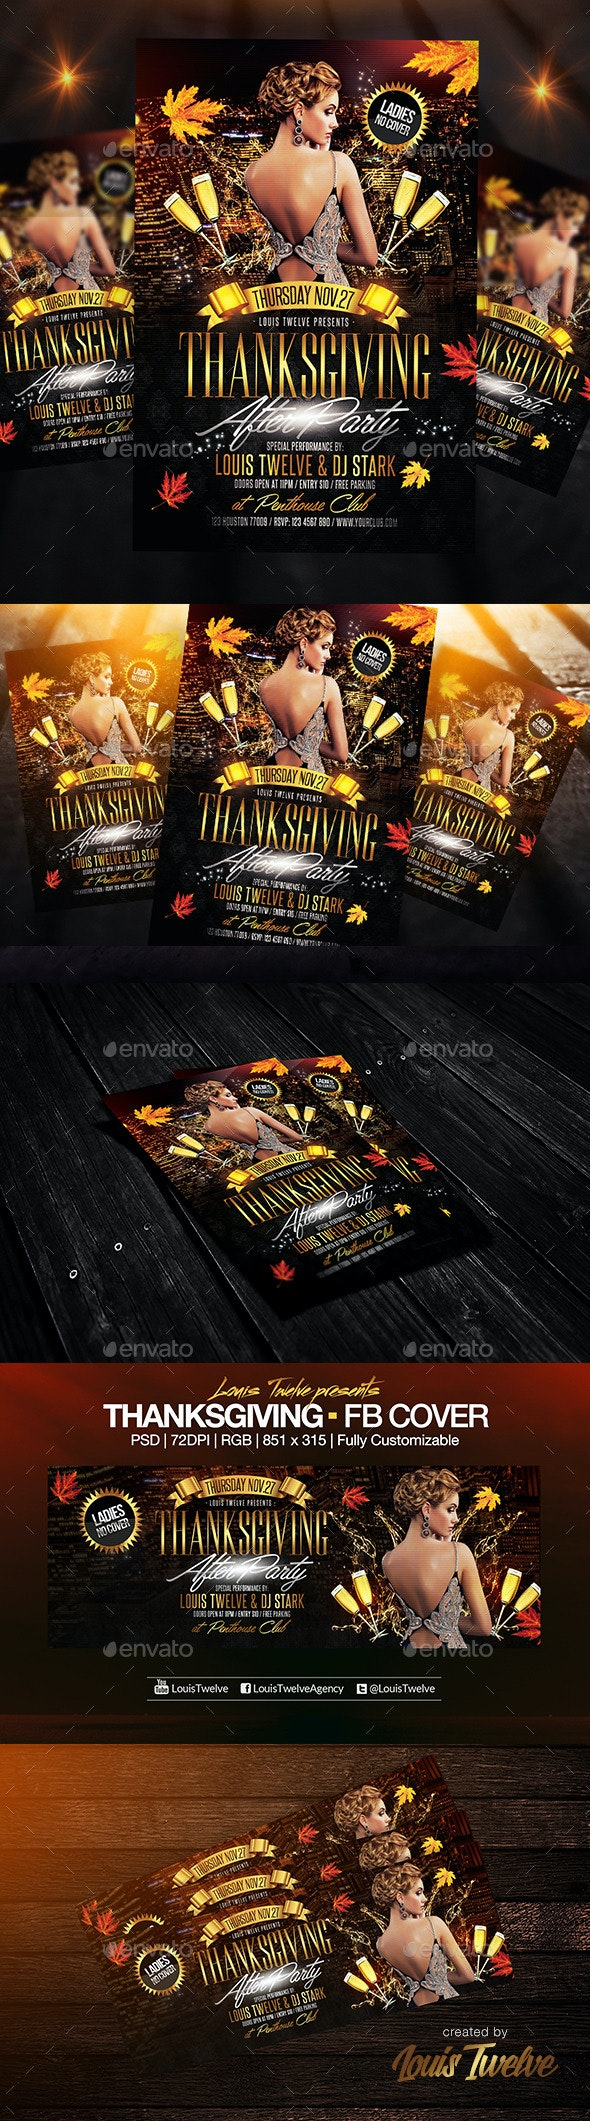 Thanksgiving After Party Flyer + FB Cover - Holidays Events